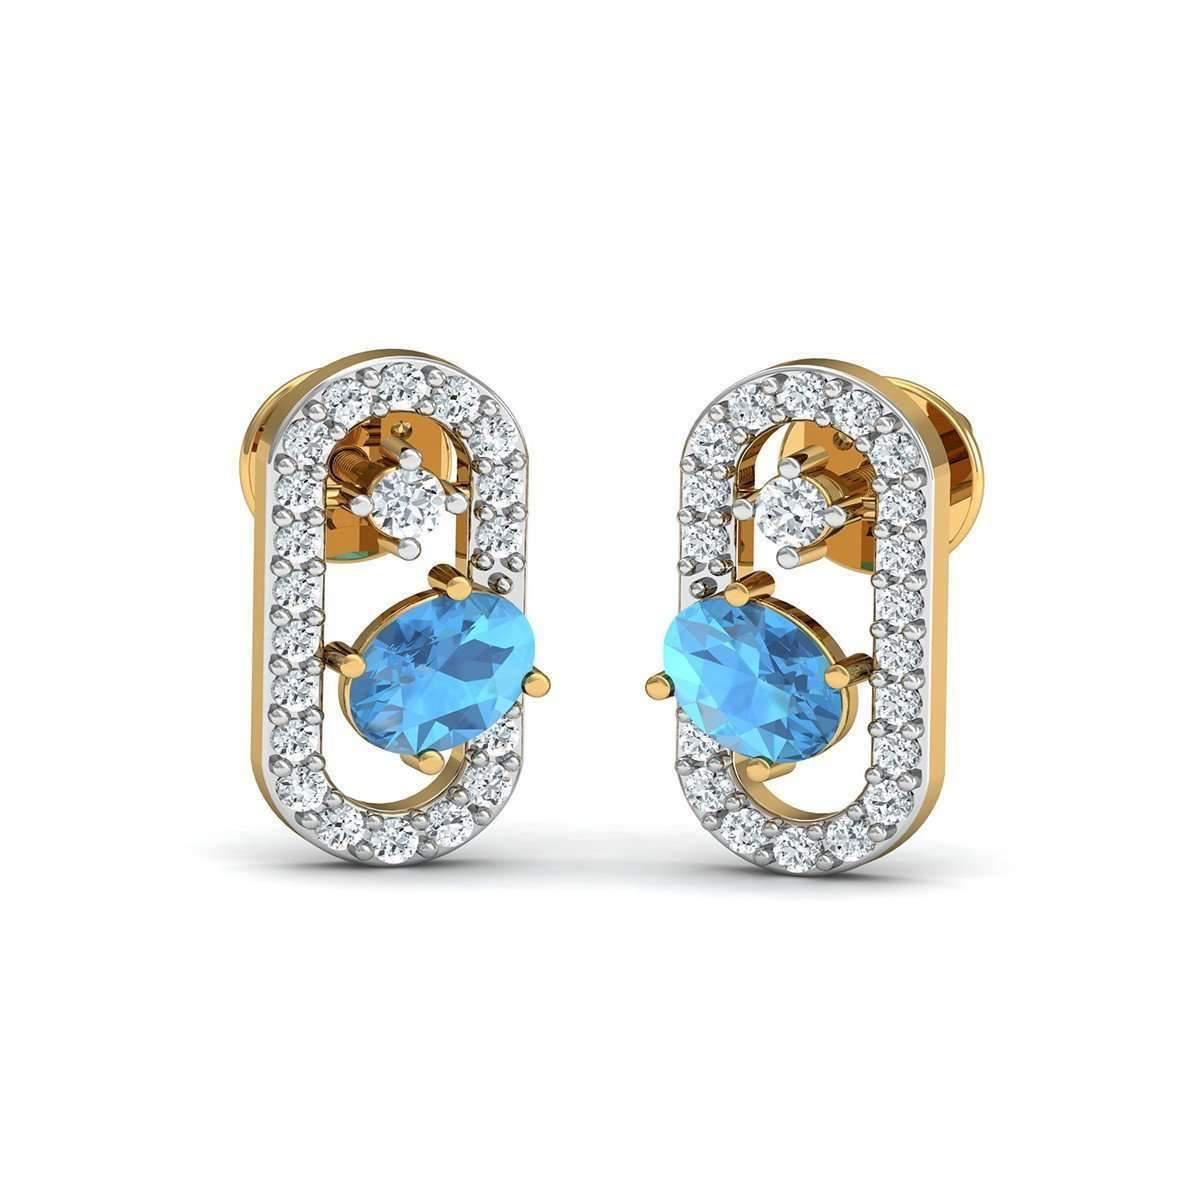 Diamoire Jewels Oval Cut Blue Sapphire and Diamond Earrings in 10kt Yellow Gold 7eJGXUAahn